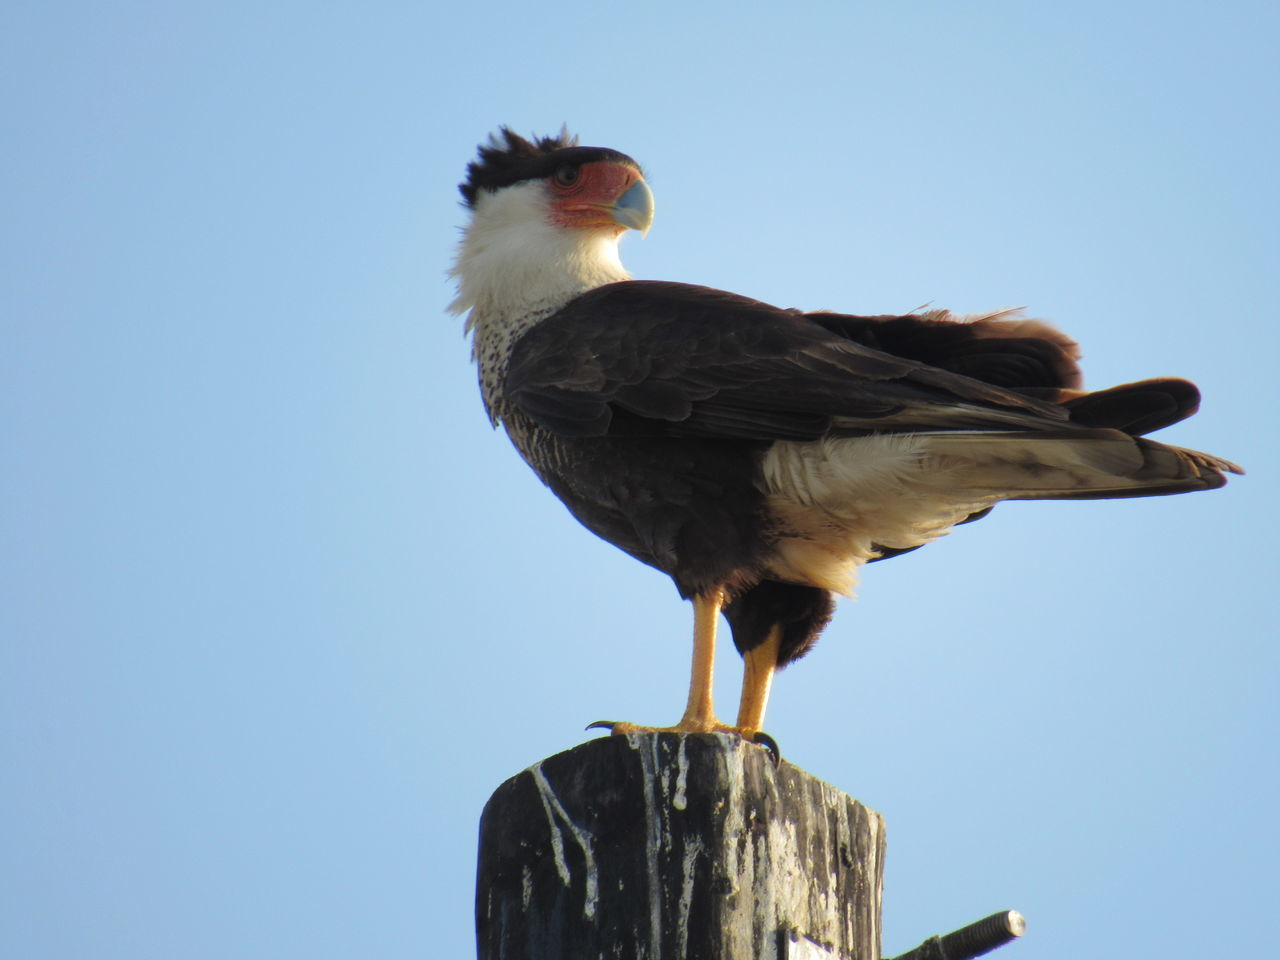 Northeastern Crested Caracara Bird Animal Themes Animals In The Wild Bird Bird Of Prey Clear Sky Close-up Day Full Length Low Angle View Nature No People One Animal Outdoors Perching Sky